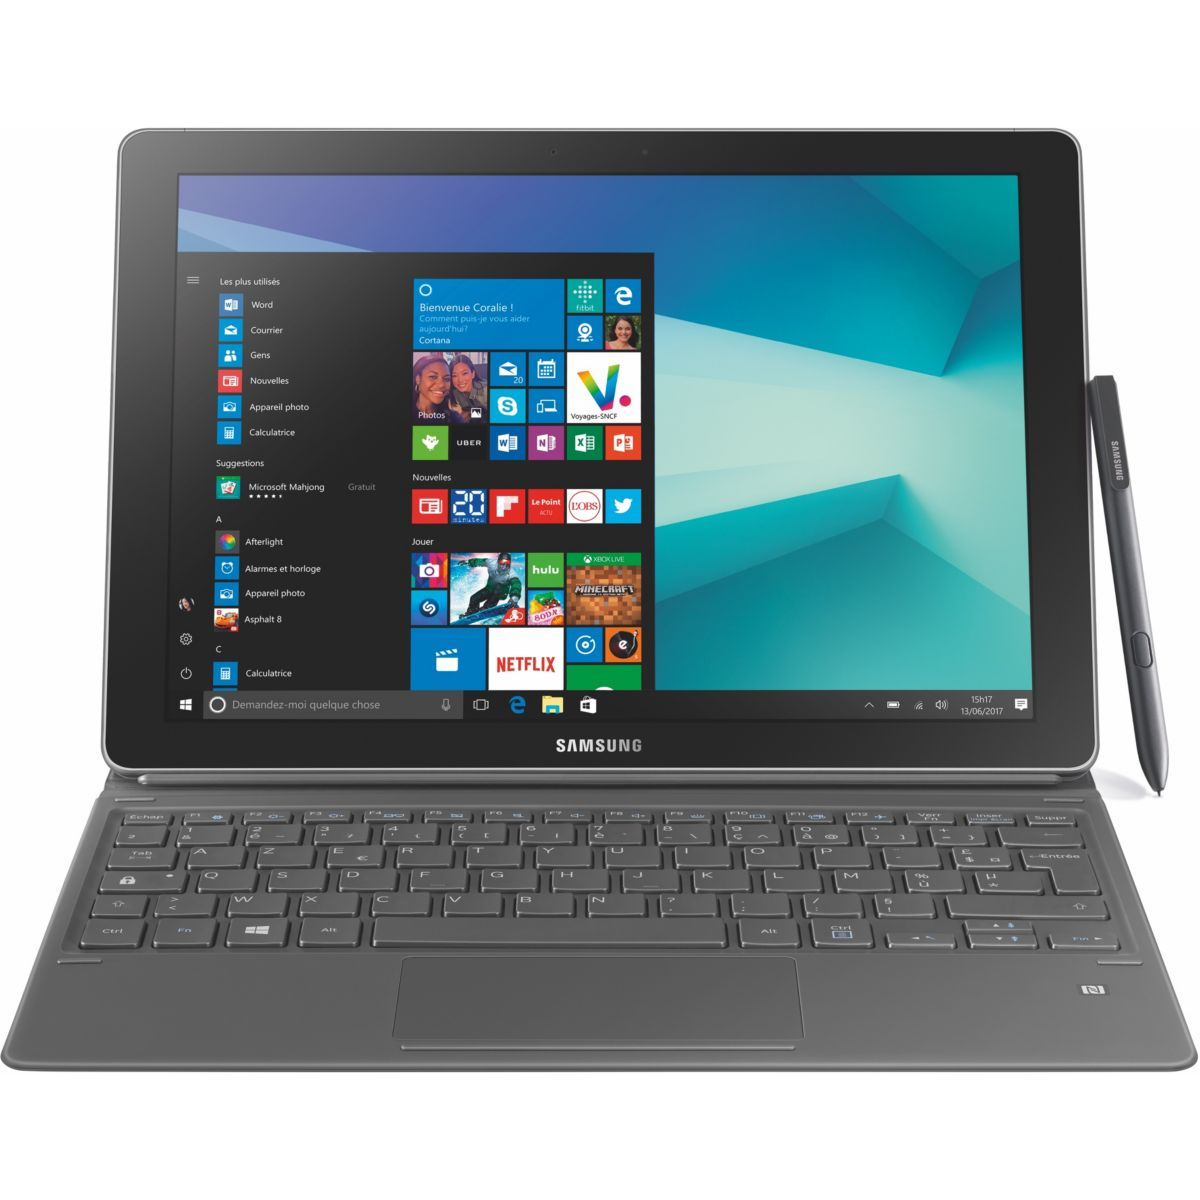 PC Hybride SAMSUNG Galaxy Book 12.0 i5 8Go 256Go